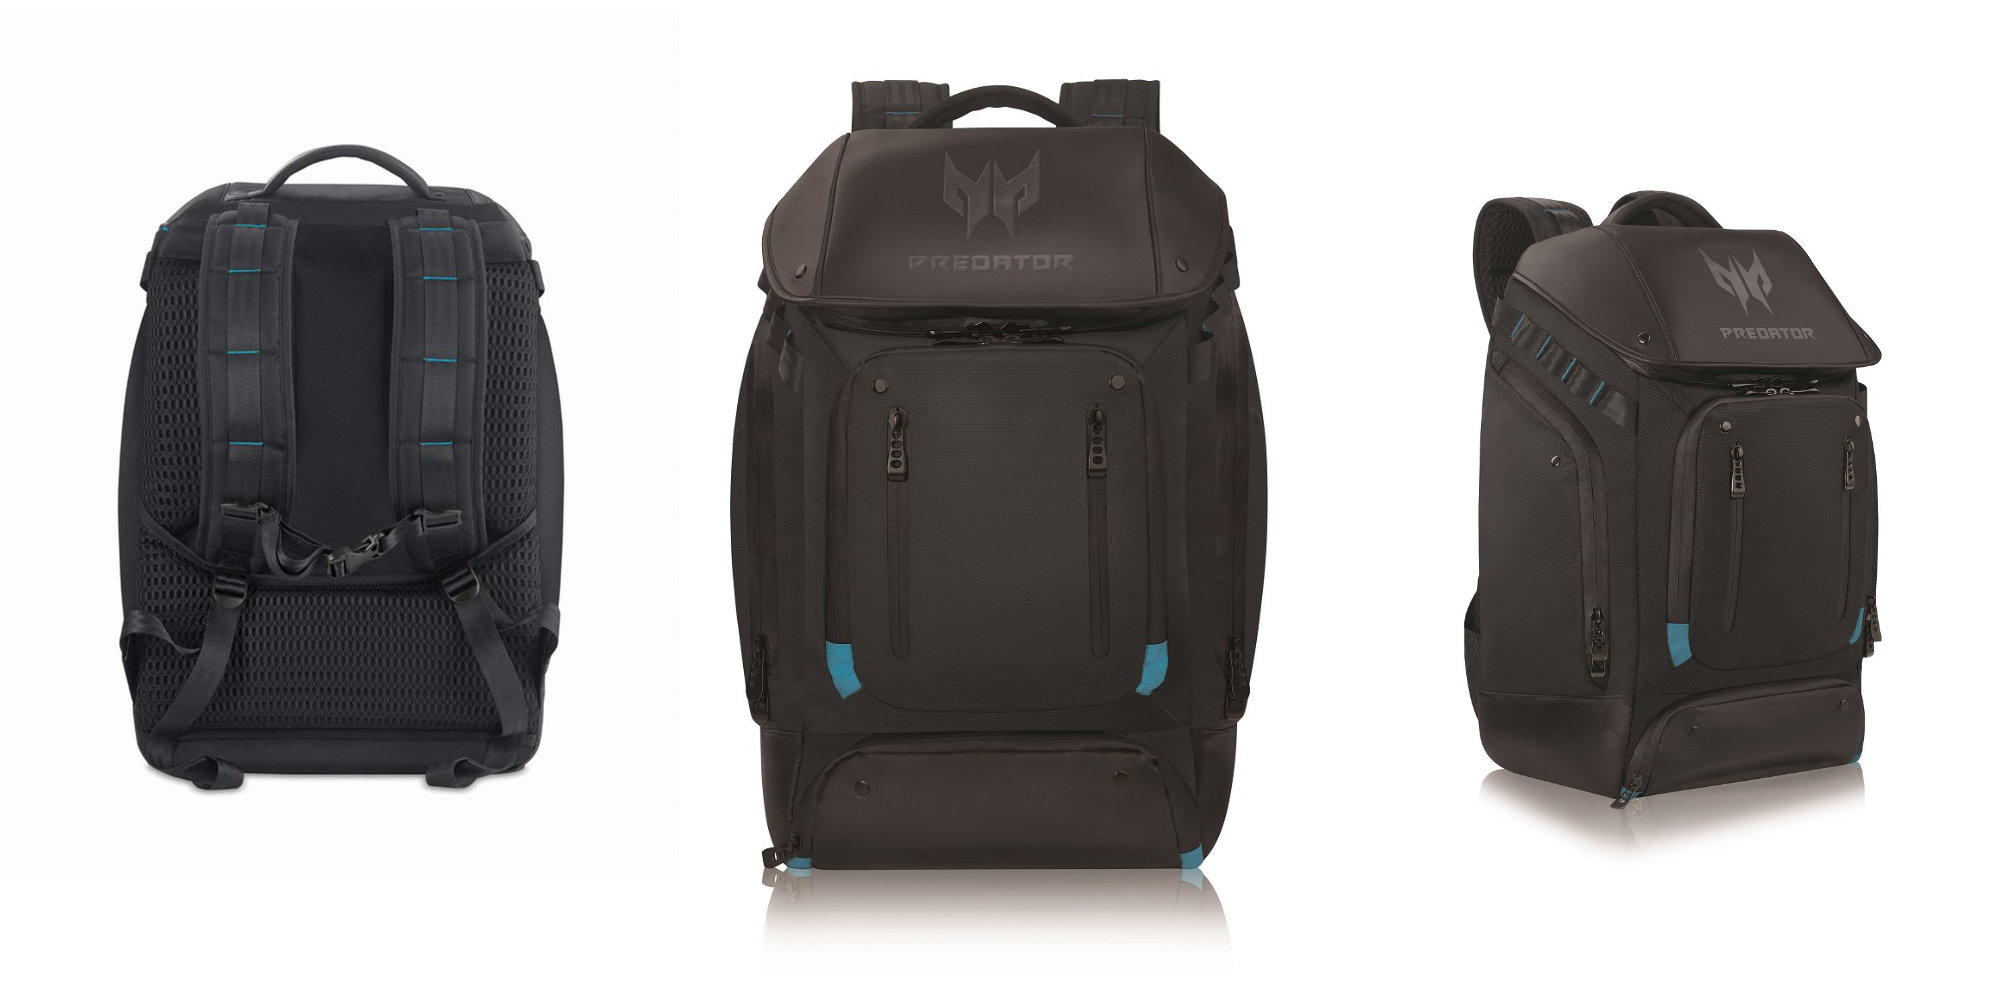 8b0af6d4f1c Acer's Predator Utility Backpack sports slick styling and fits every ...